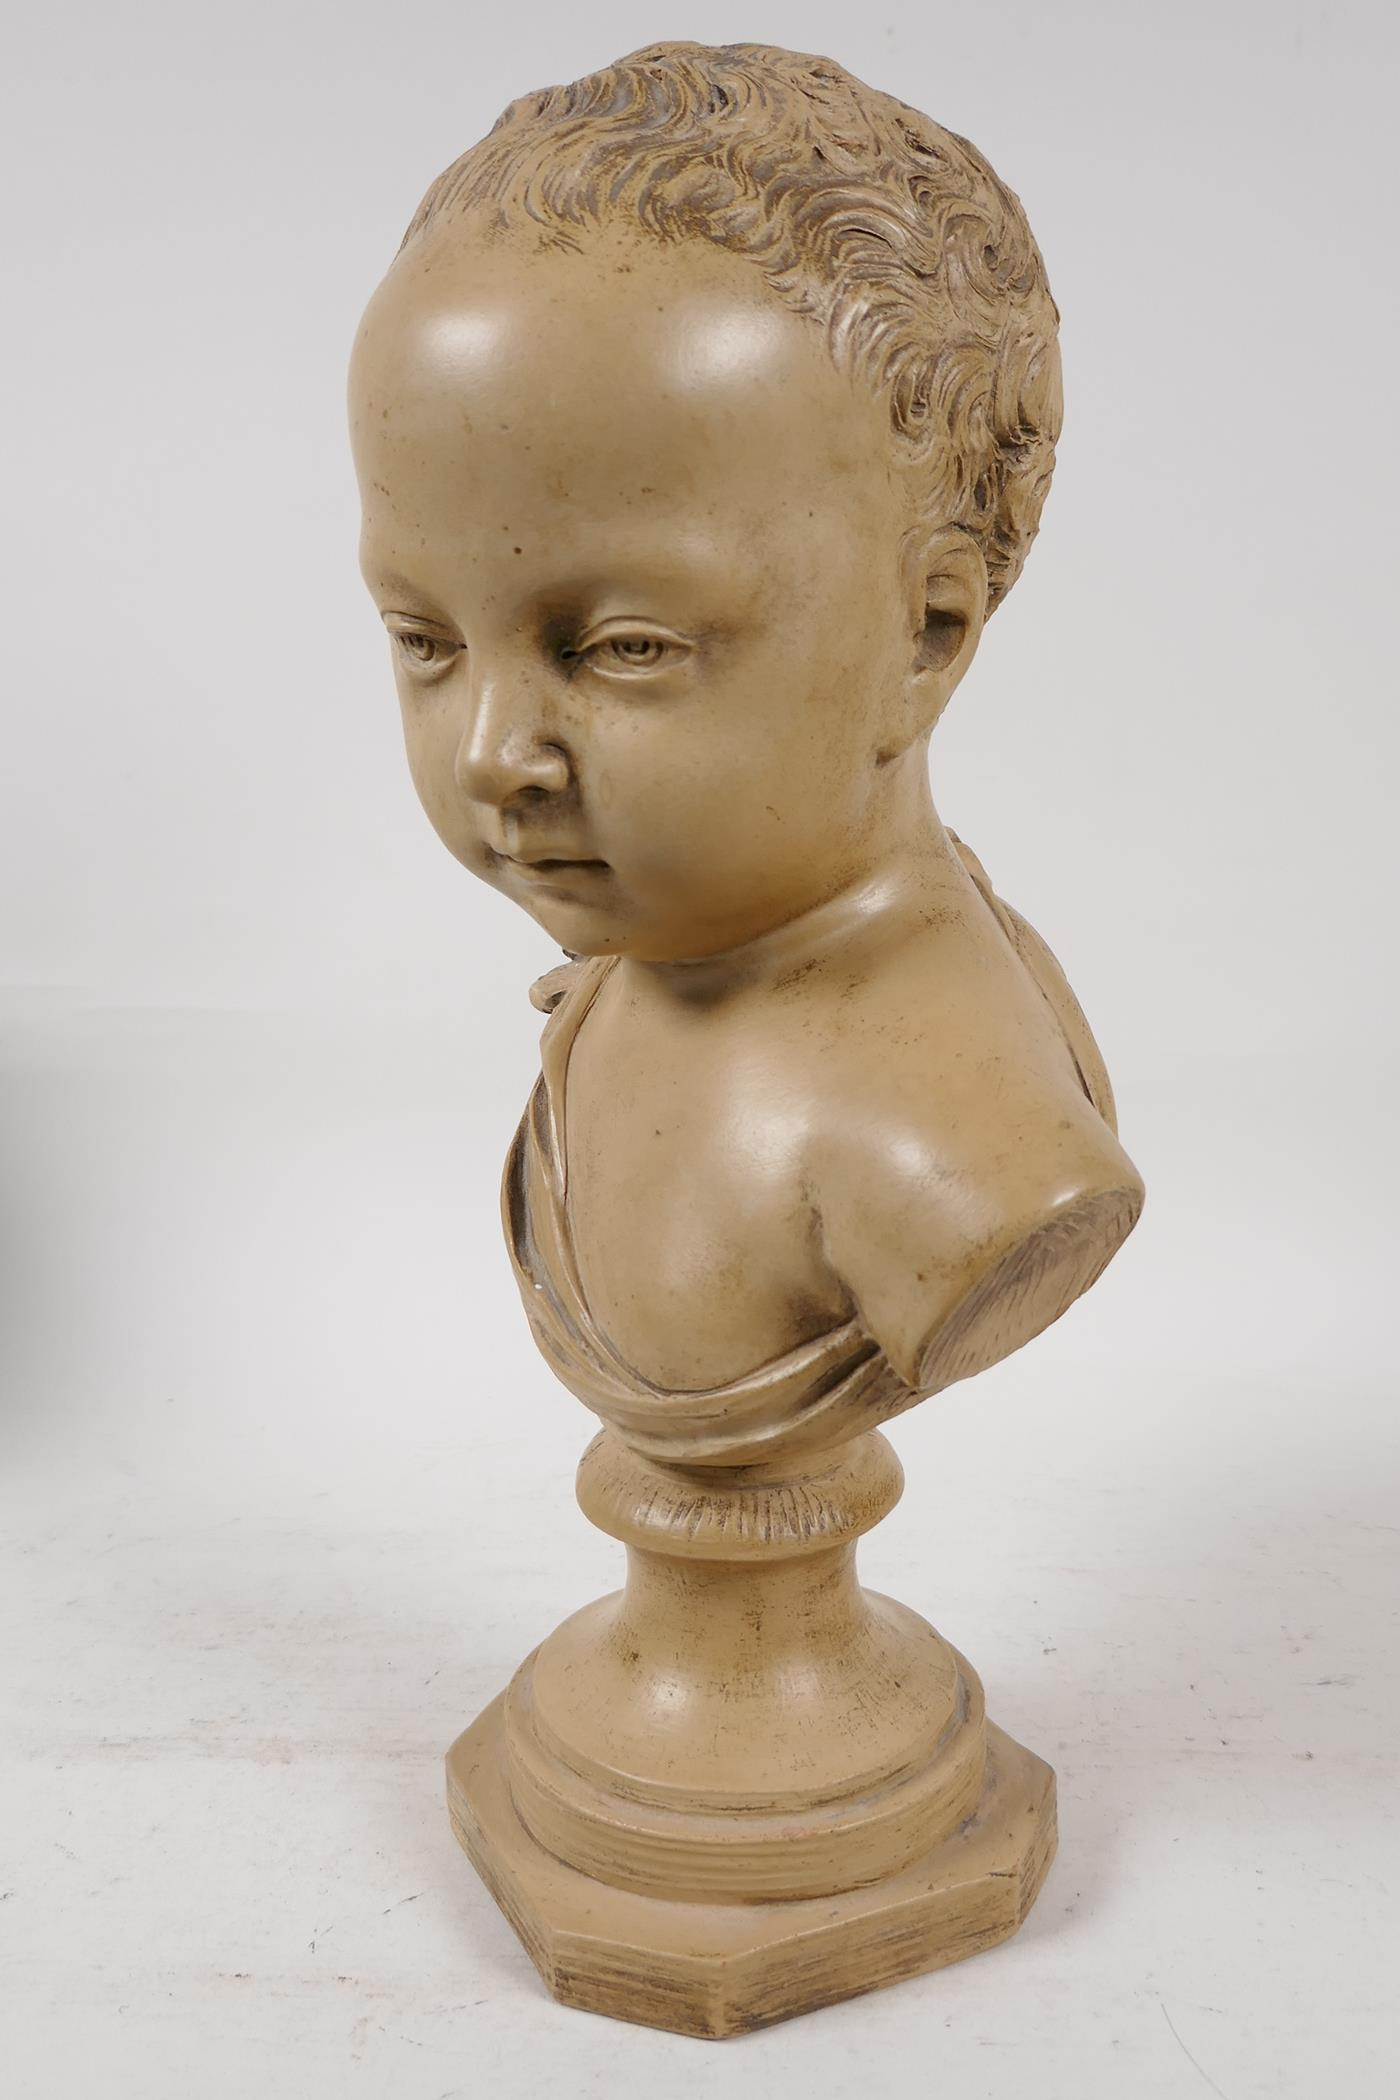 """A terracotta bust of a chld, after J.A. Houdon, 13"""" high - Image 3 of 6"""